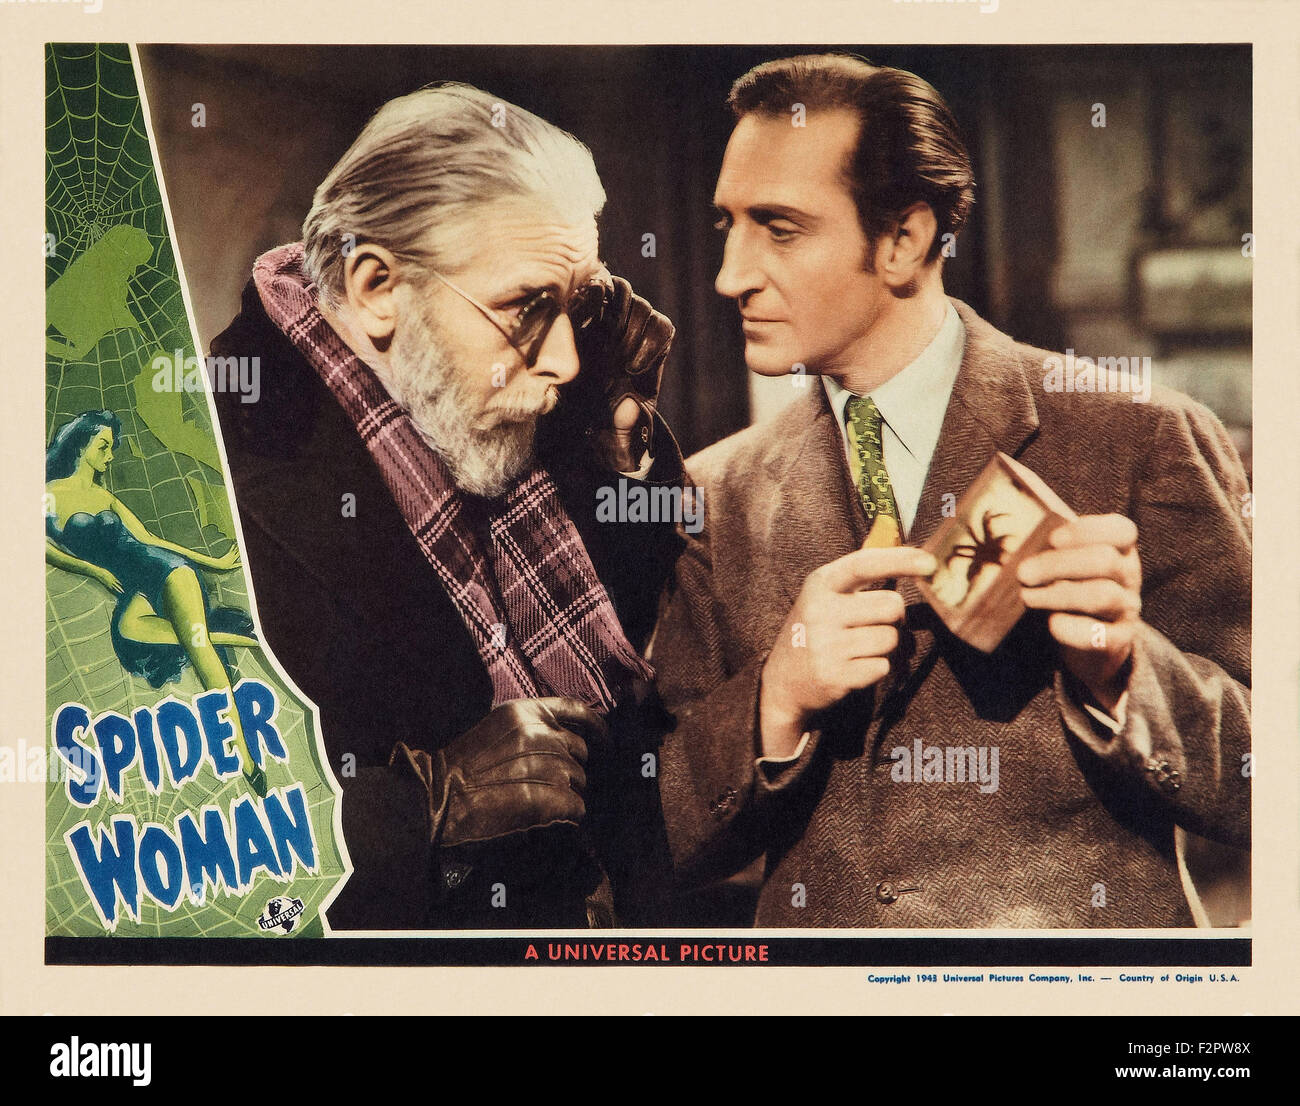 spider woman full movie